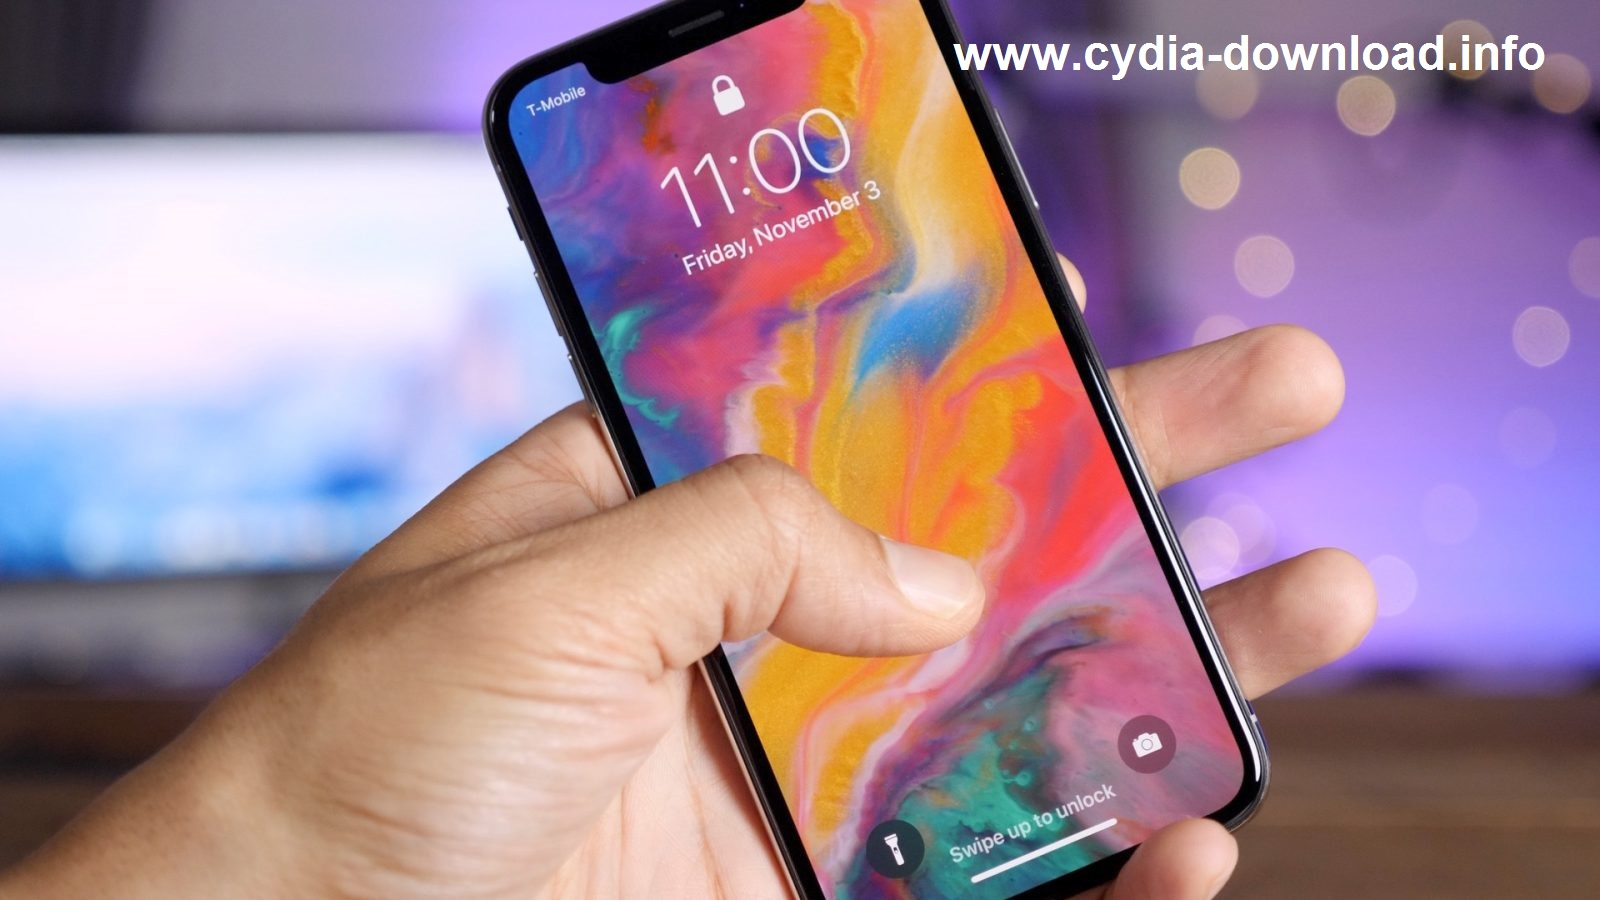 Cydia Download iOS 11.2